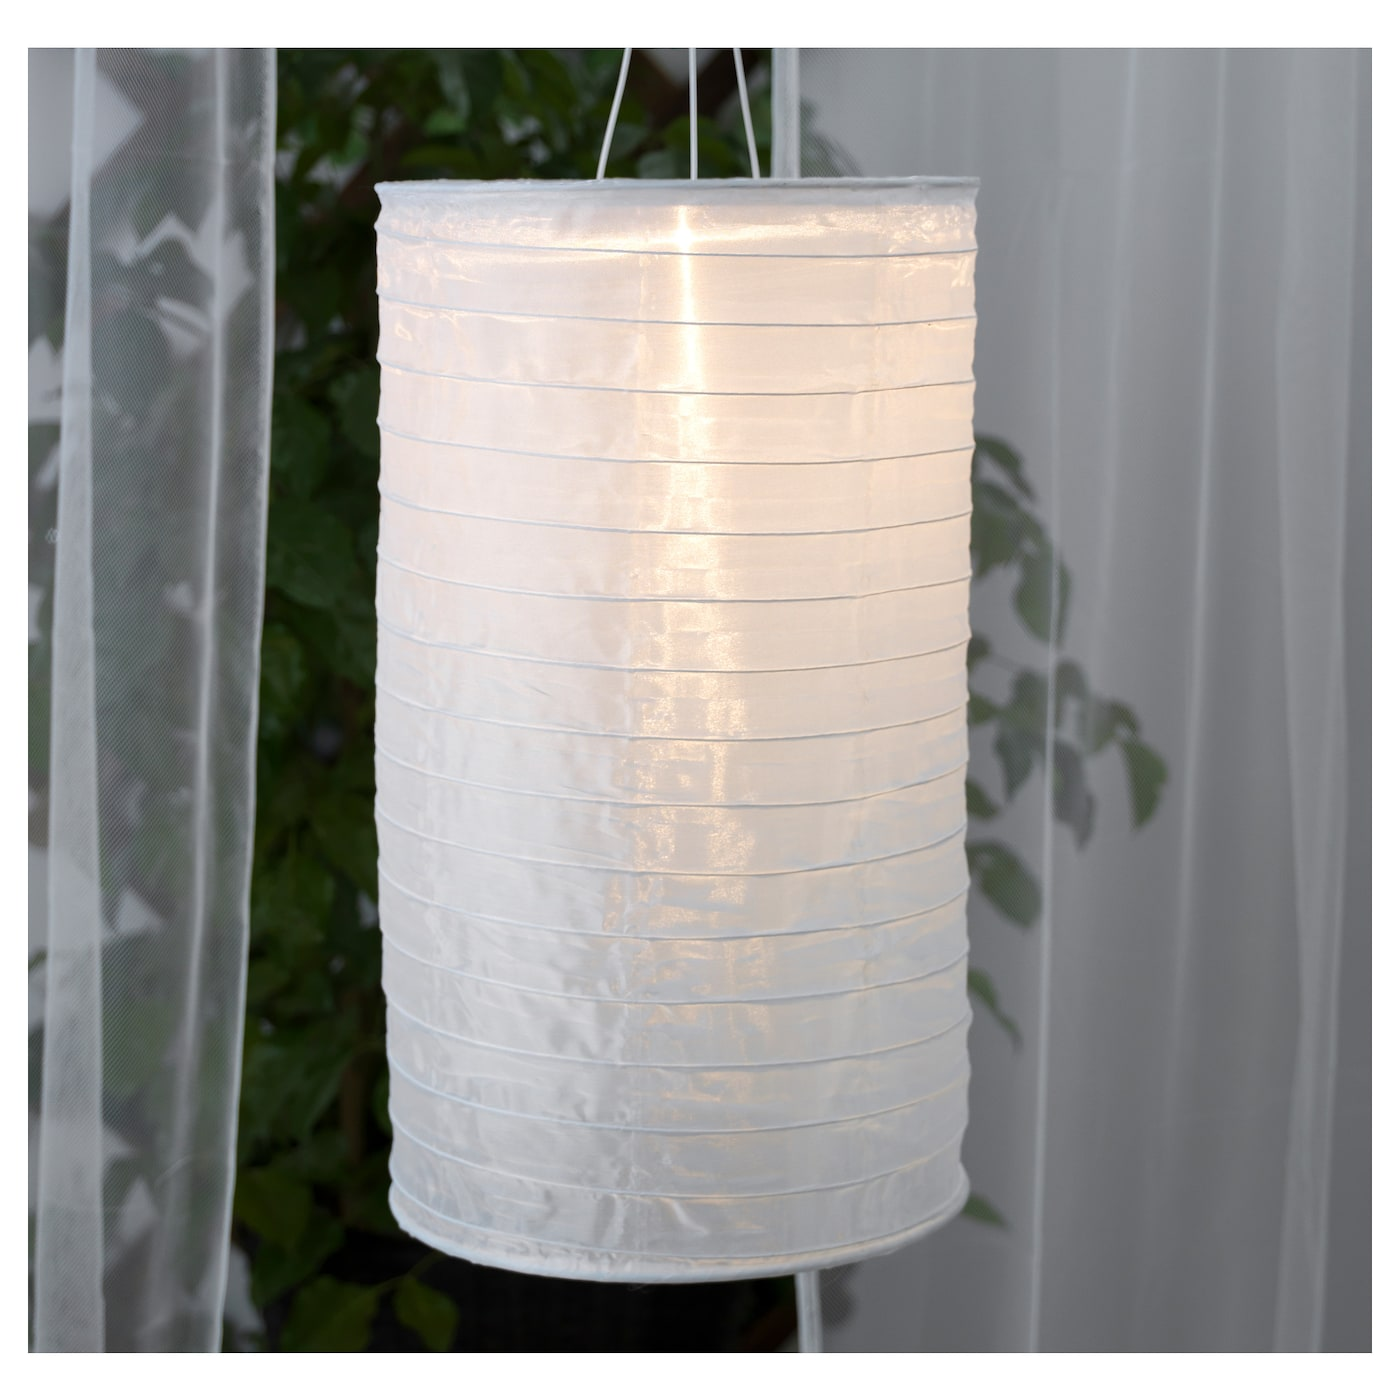 solvinden solar powered pendant lamp tube shaped white 28 cm ikea. Black Bedroom Furniture Sets. Home Design Ideas